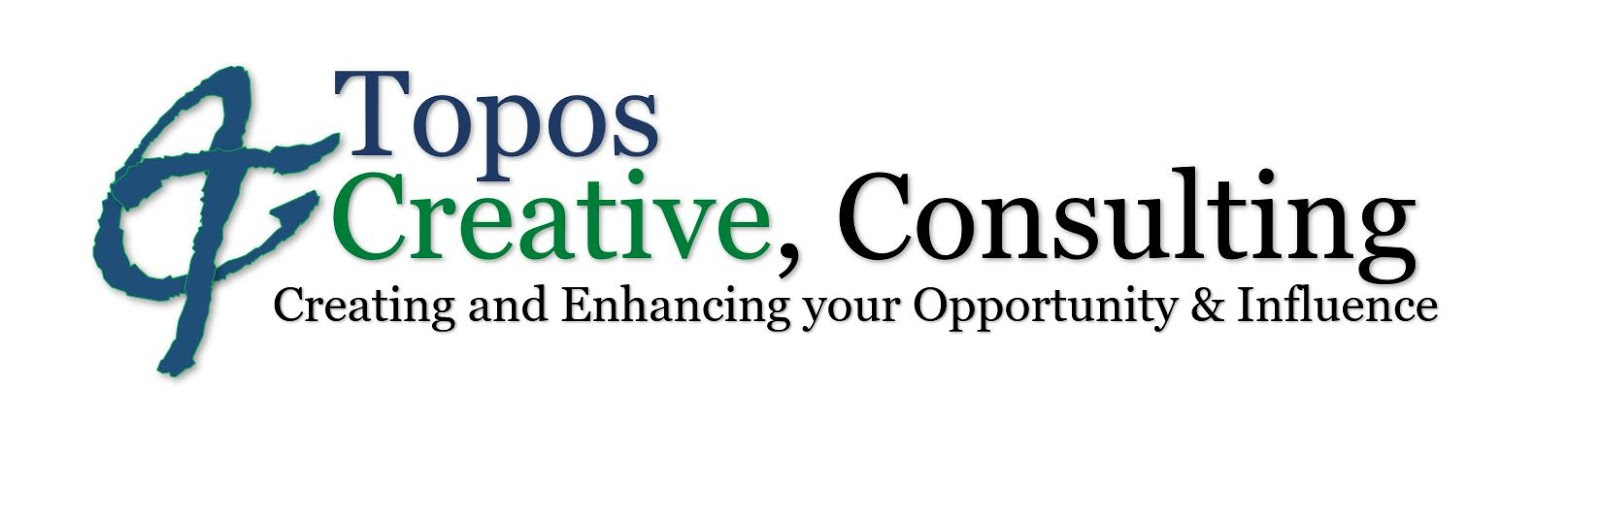 Topos Creative, Consulting